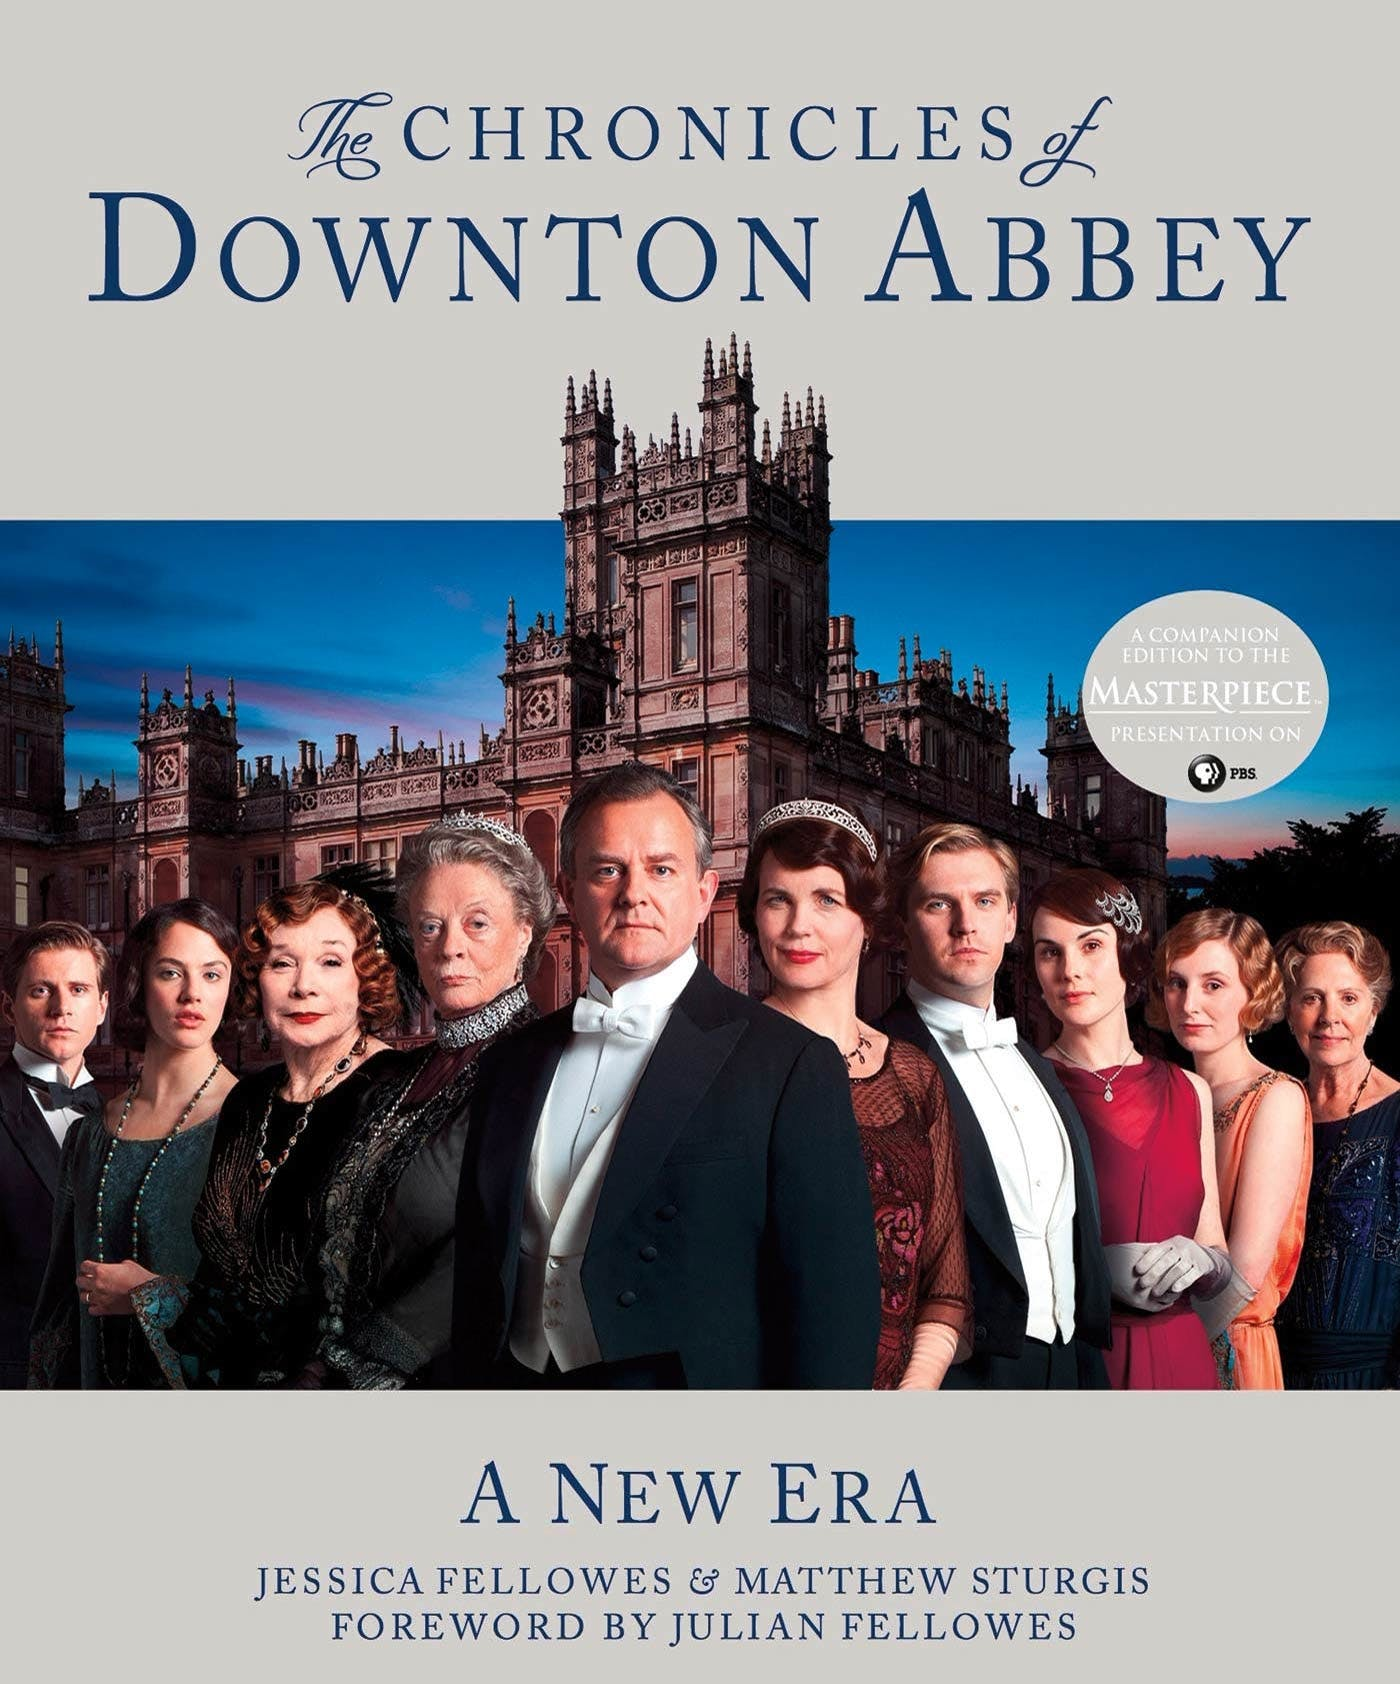 Image of The Chronicles of Downton Abbey